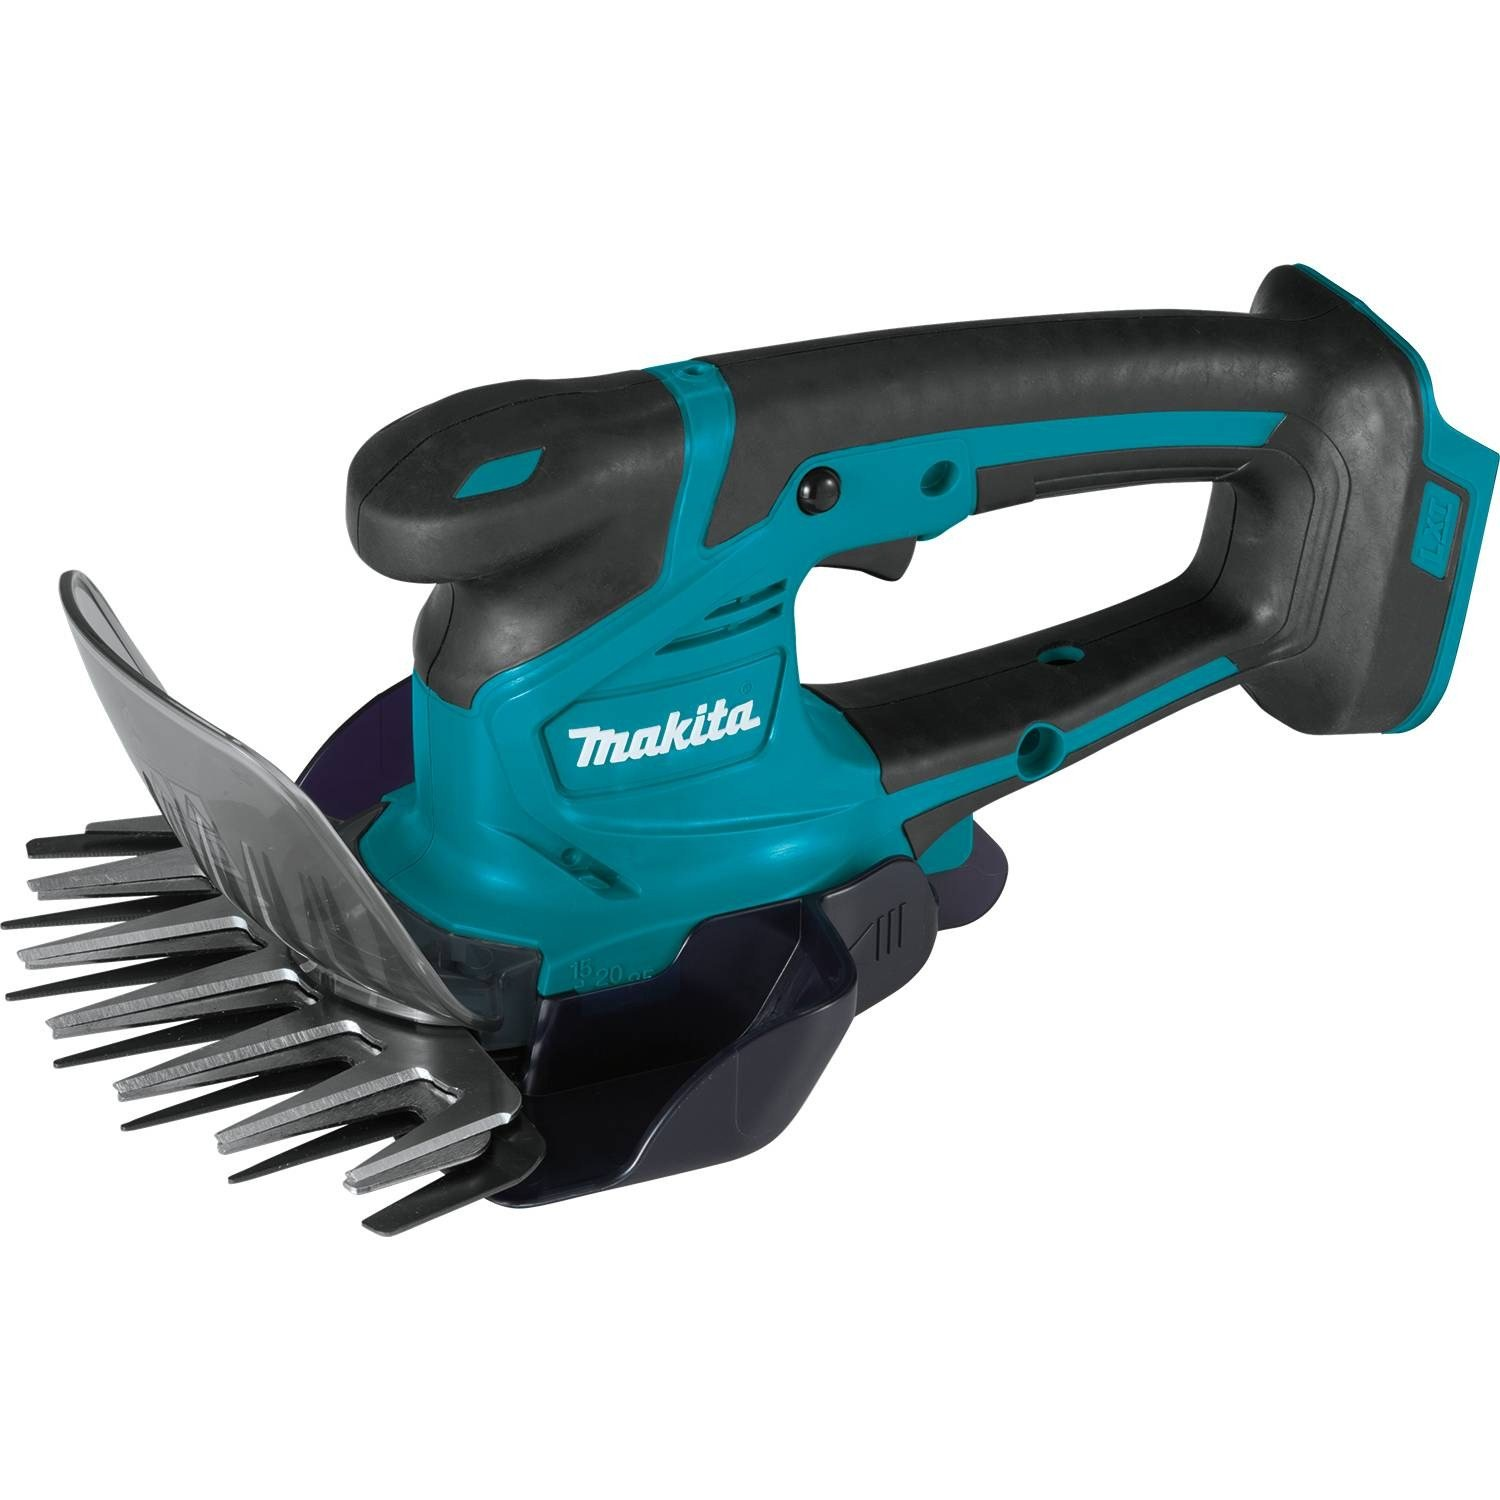 Makita XMU04Z 18V LXT Lithium-Ion Cordless Grass Shear, Tool Only